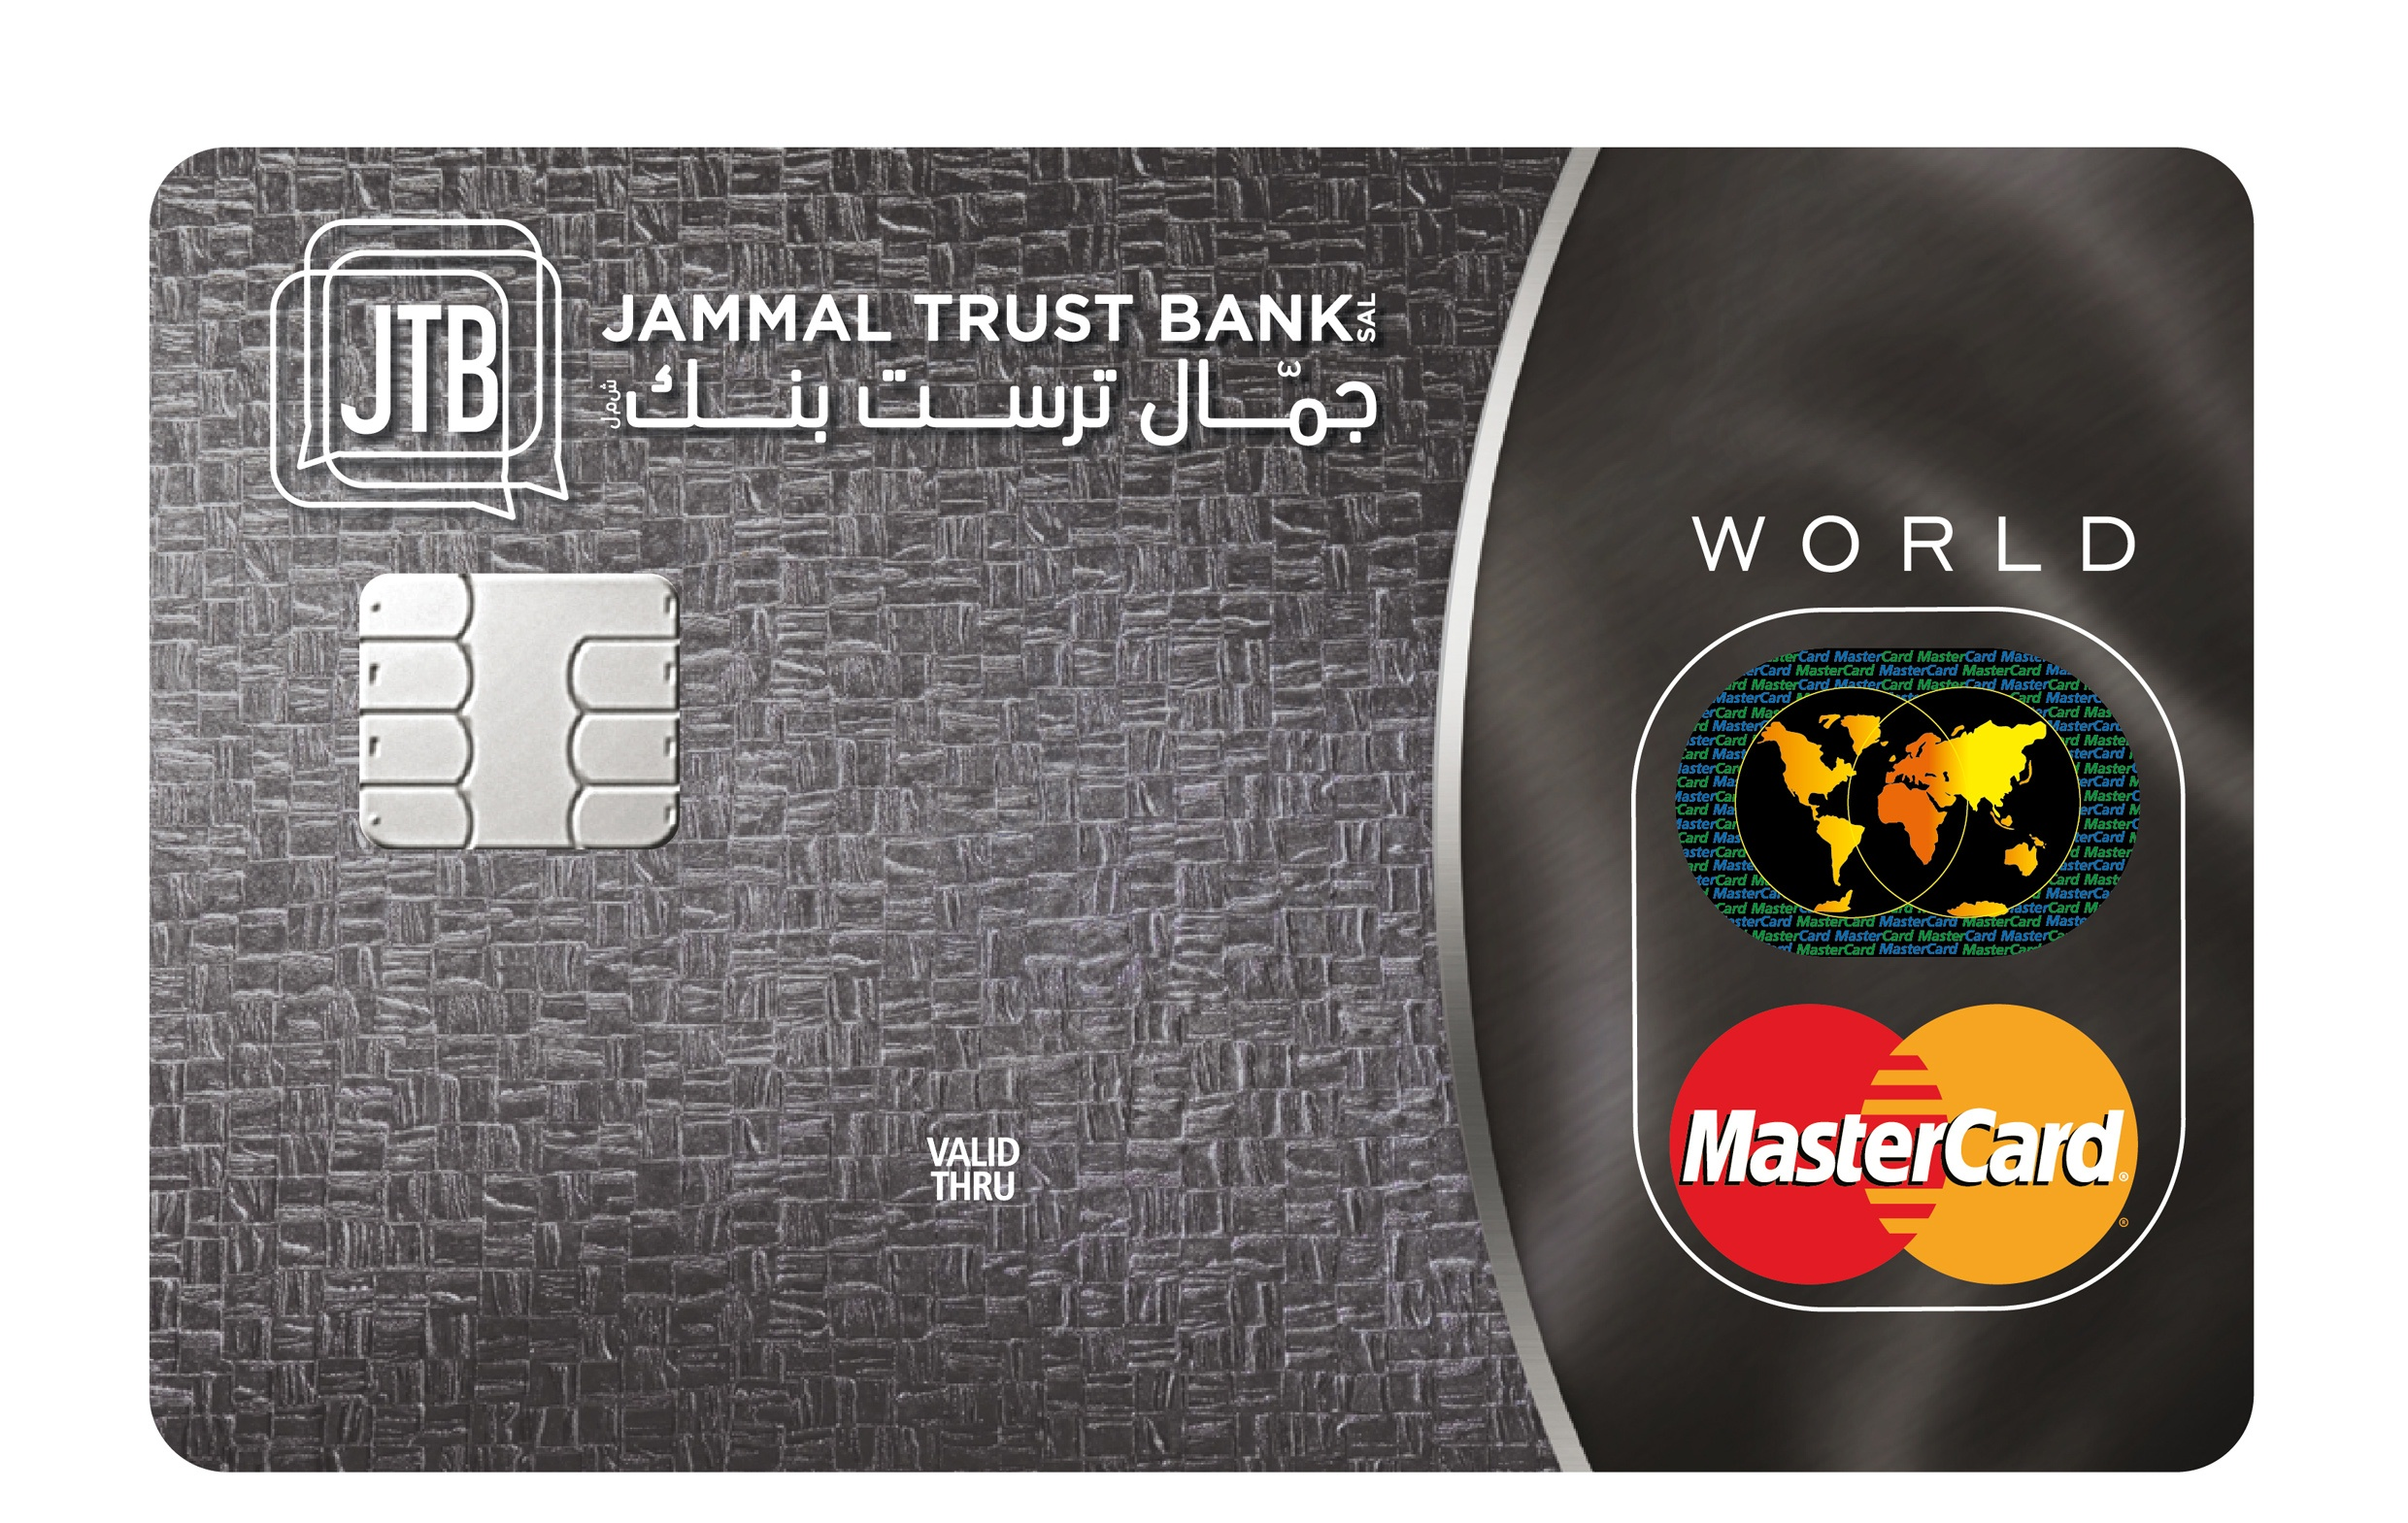 Jammal Trust Bank Jtb Expands Its Services With The